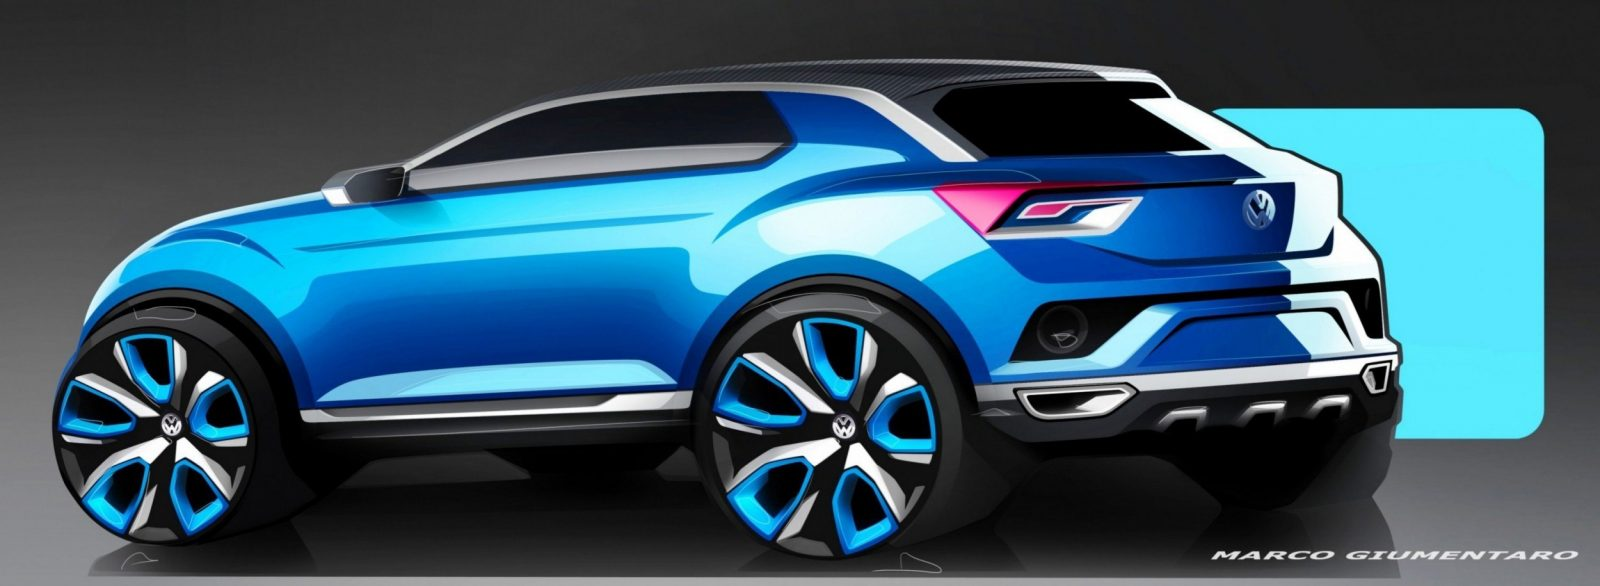 VW T-ROC -- A High-Tech Jeep Wrangler for the Digital Age -- Hot Style -- Real 4WD -- Removable Roof Panels 4